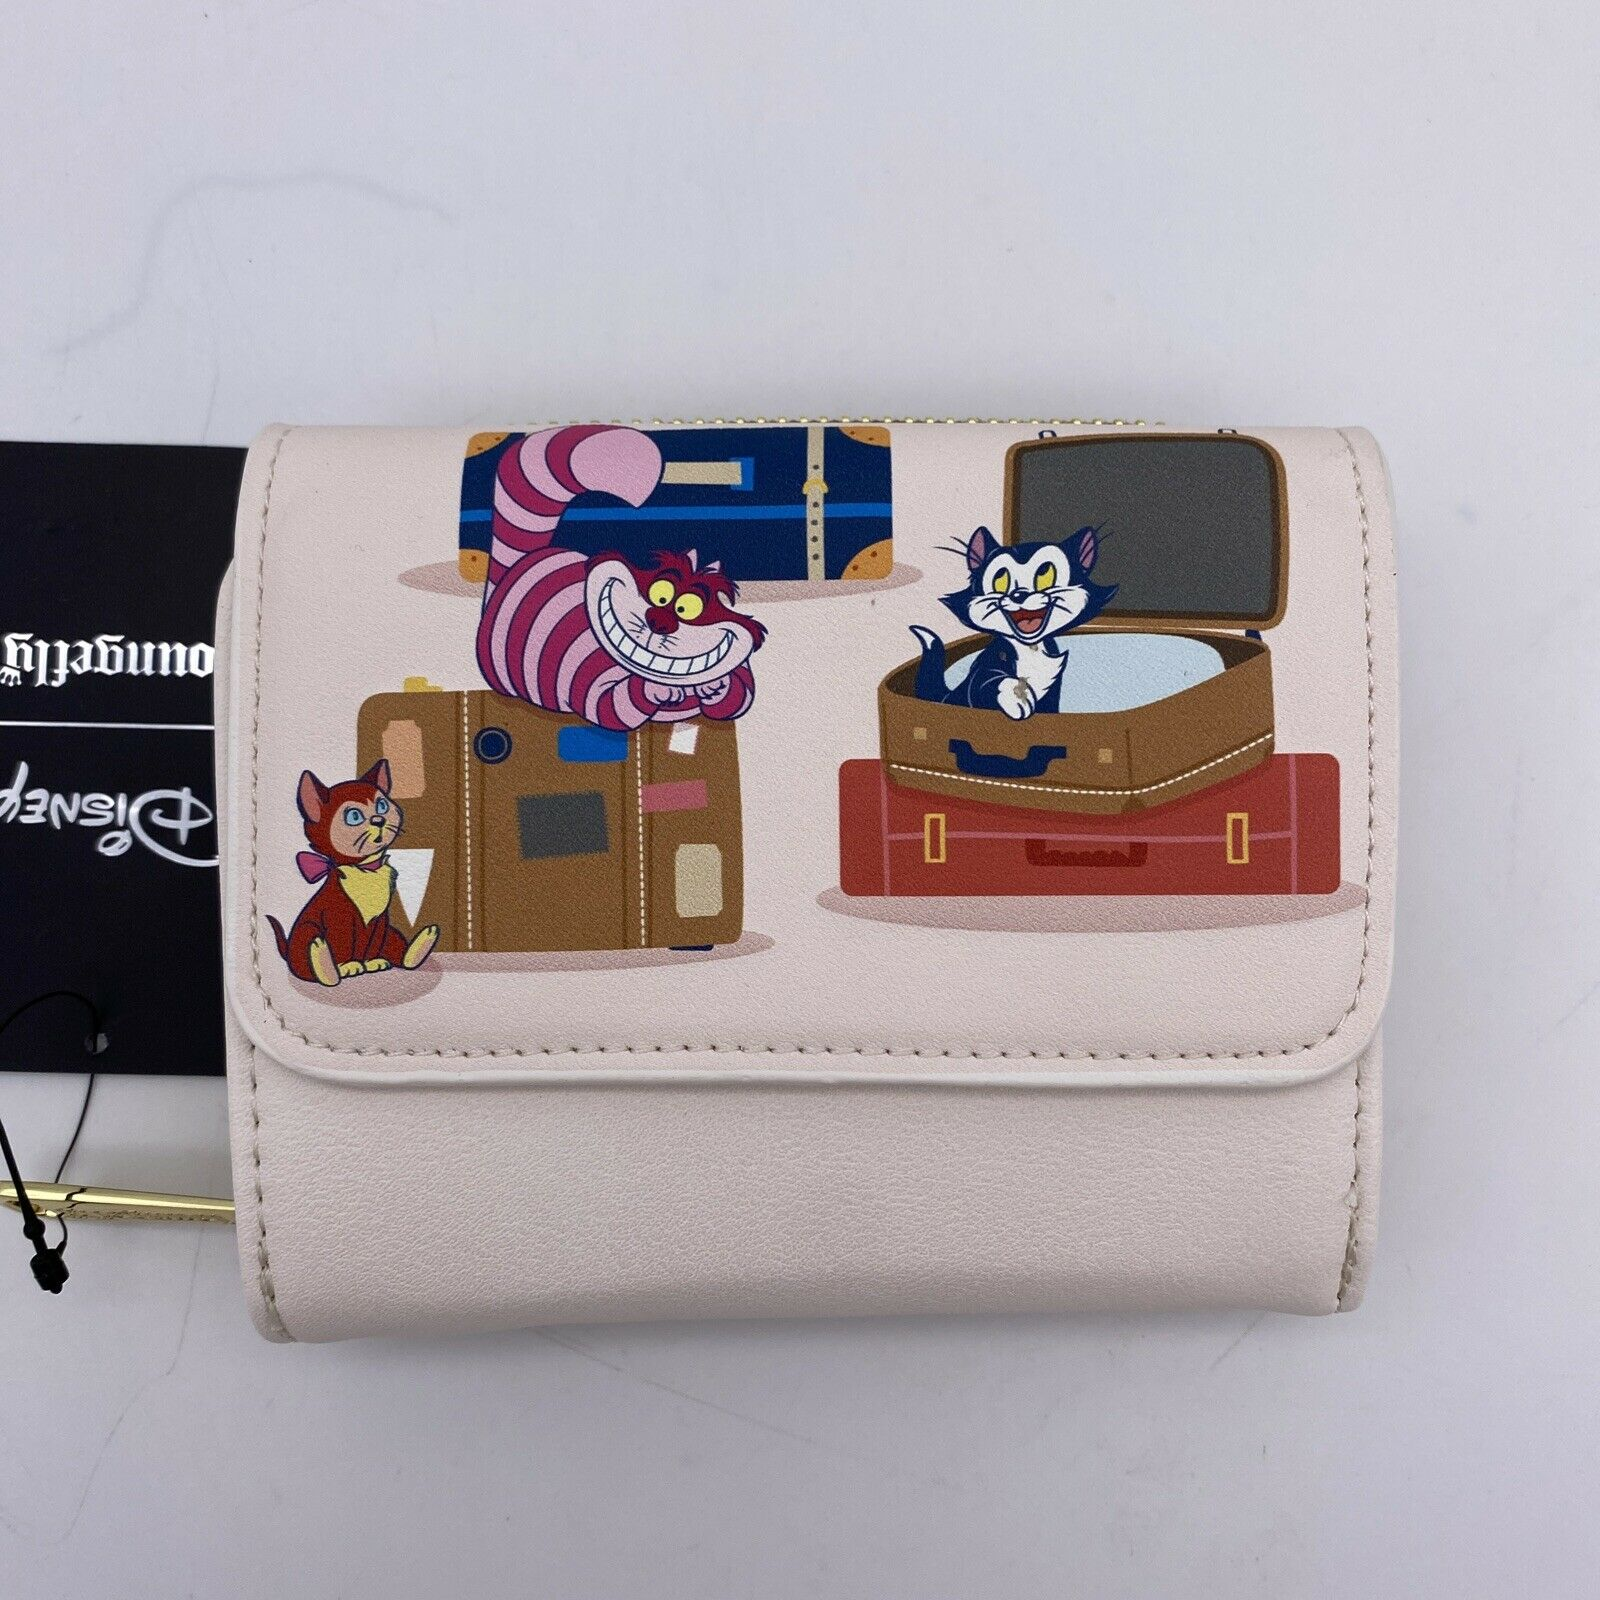 Loungefly Disney Wallet Cats Luggage Small Zip - Cheshire, Figaro, Aristocats